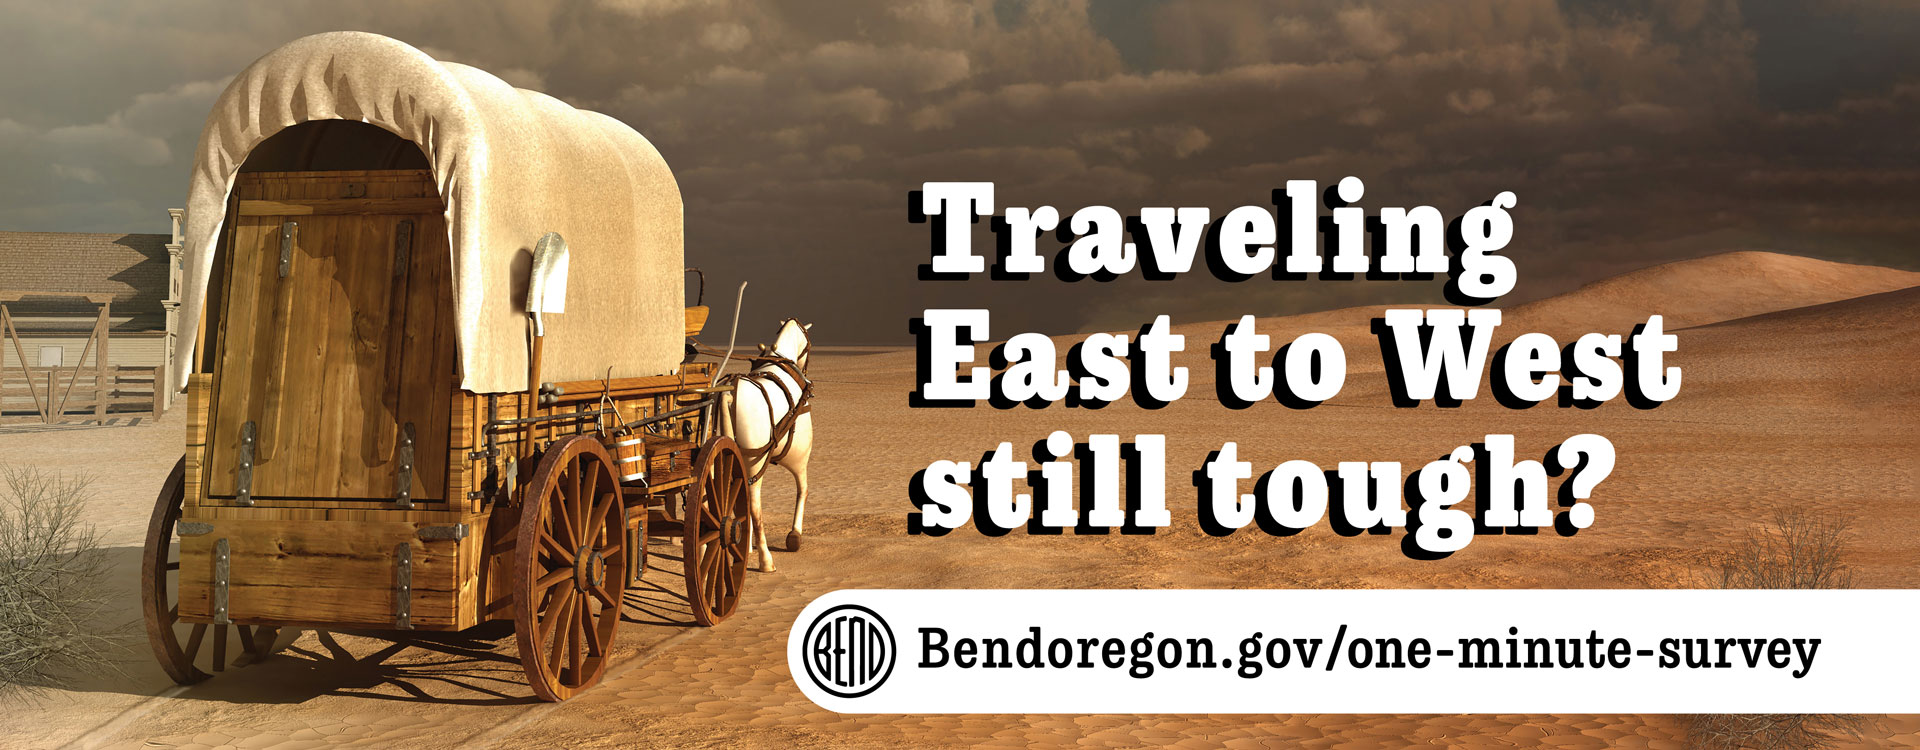 Stagecoach traveling across the desert with text that reads traveling East to West still tough? bendoregon.gov/one-minute-survey